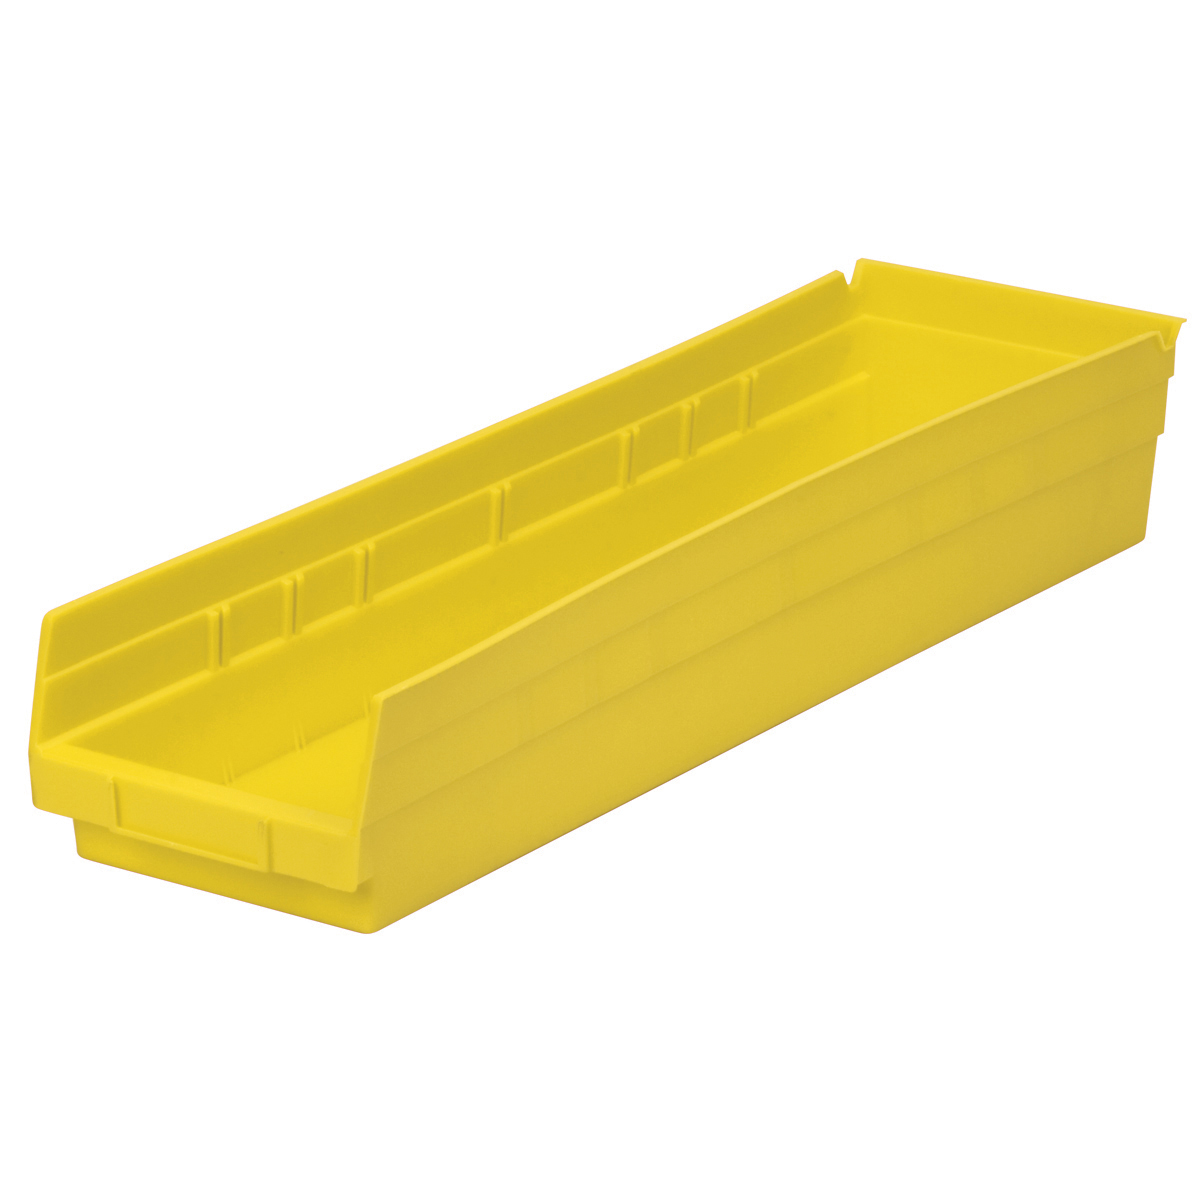 Shelf Bin 23-5/8 x 6-5/8 x 4, Yellow (30164YELLO).  This item sold in carton quantities of 6.